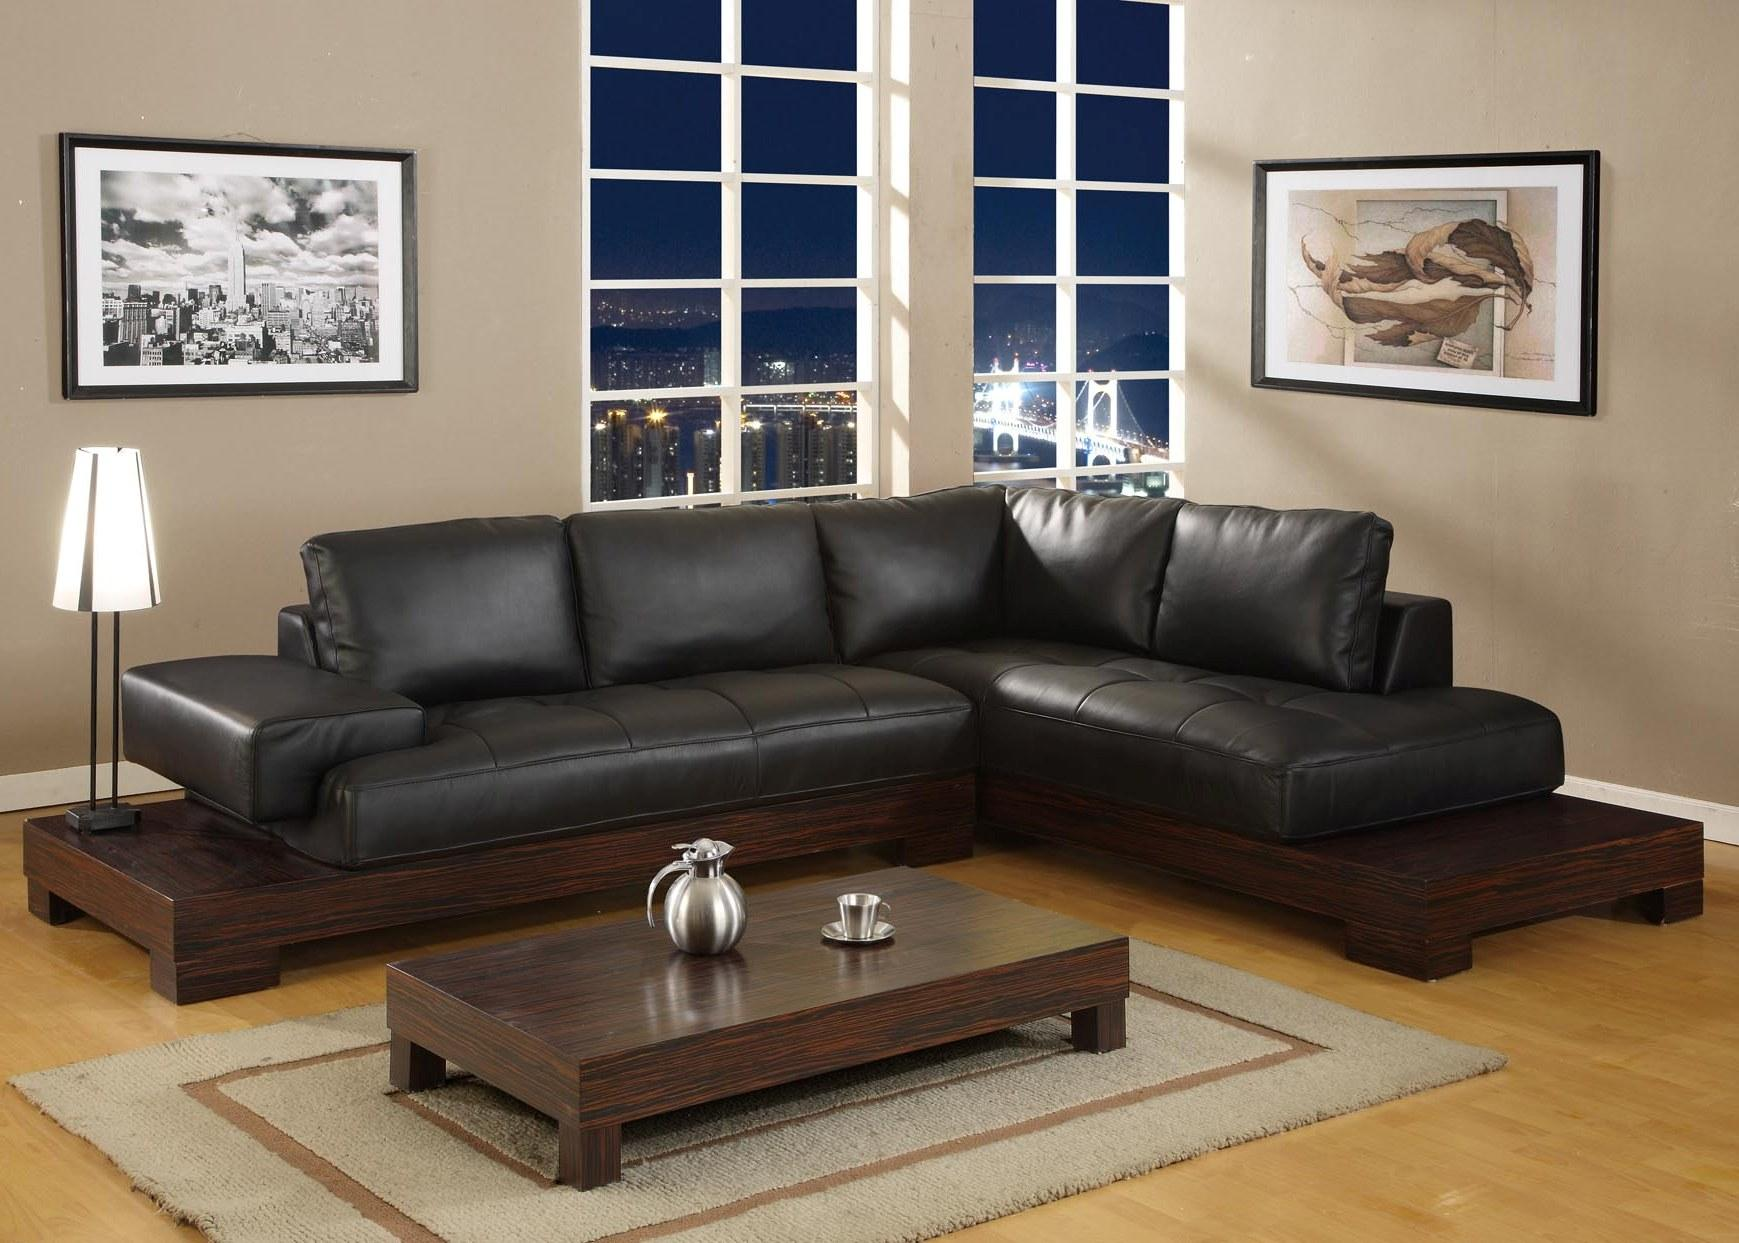 Living Room Paint Ideas With Black Furniture black furniture living room ideas | homesfeed